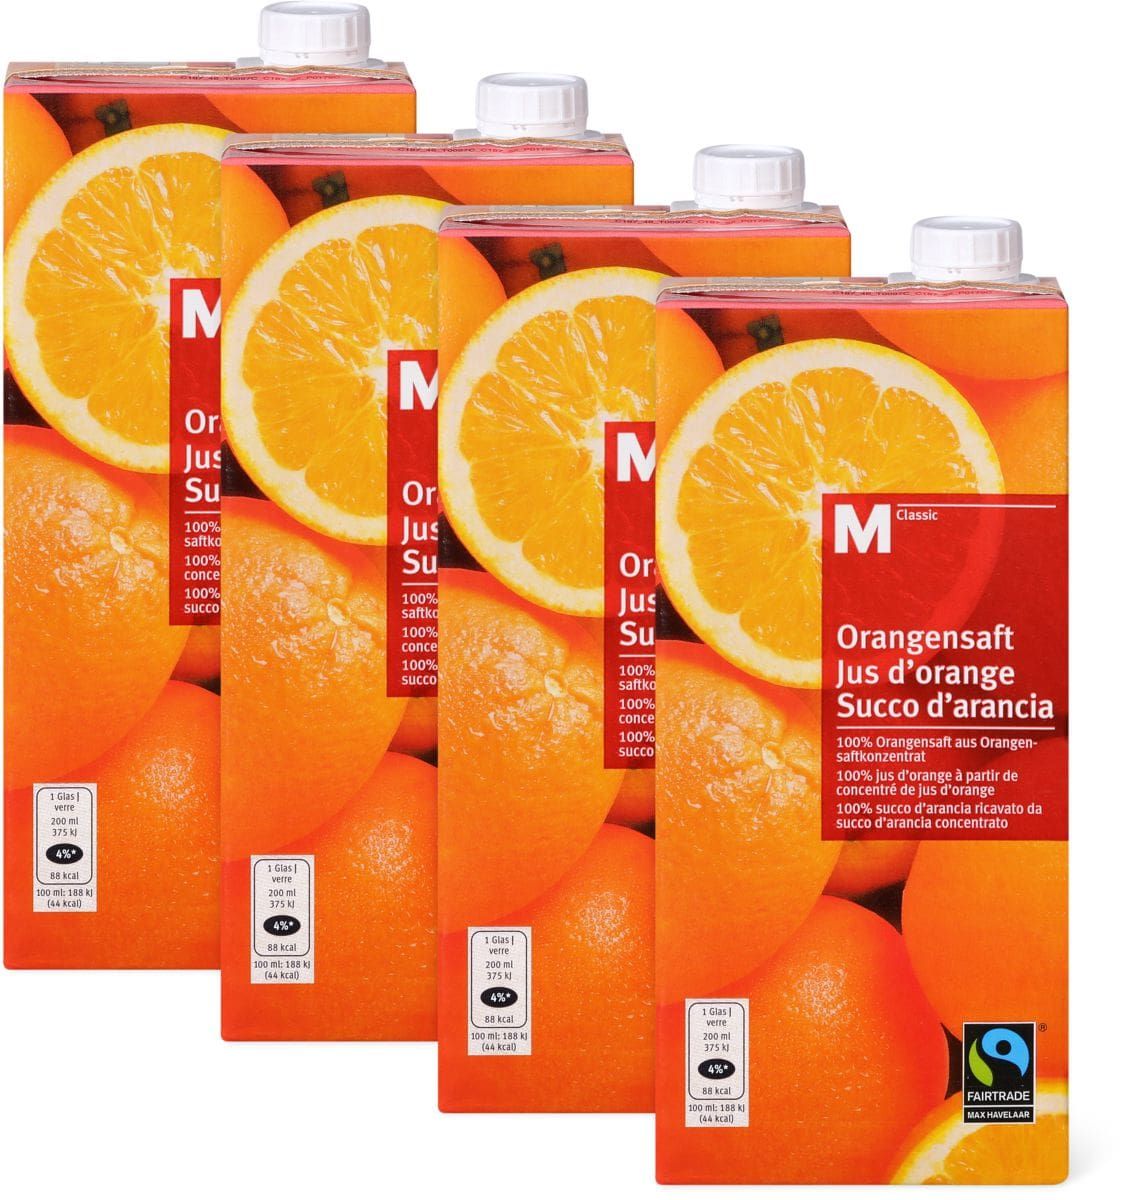 M-Classic Max Hav Jus d'orange